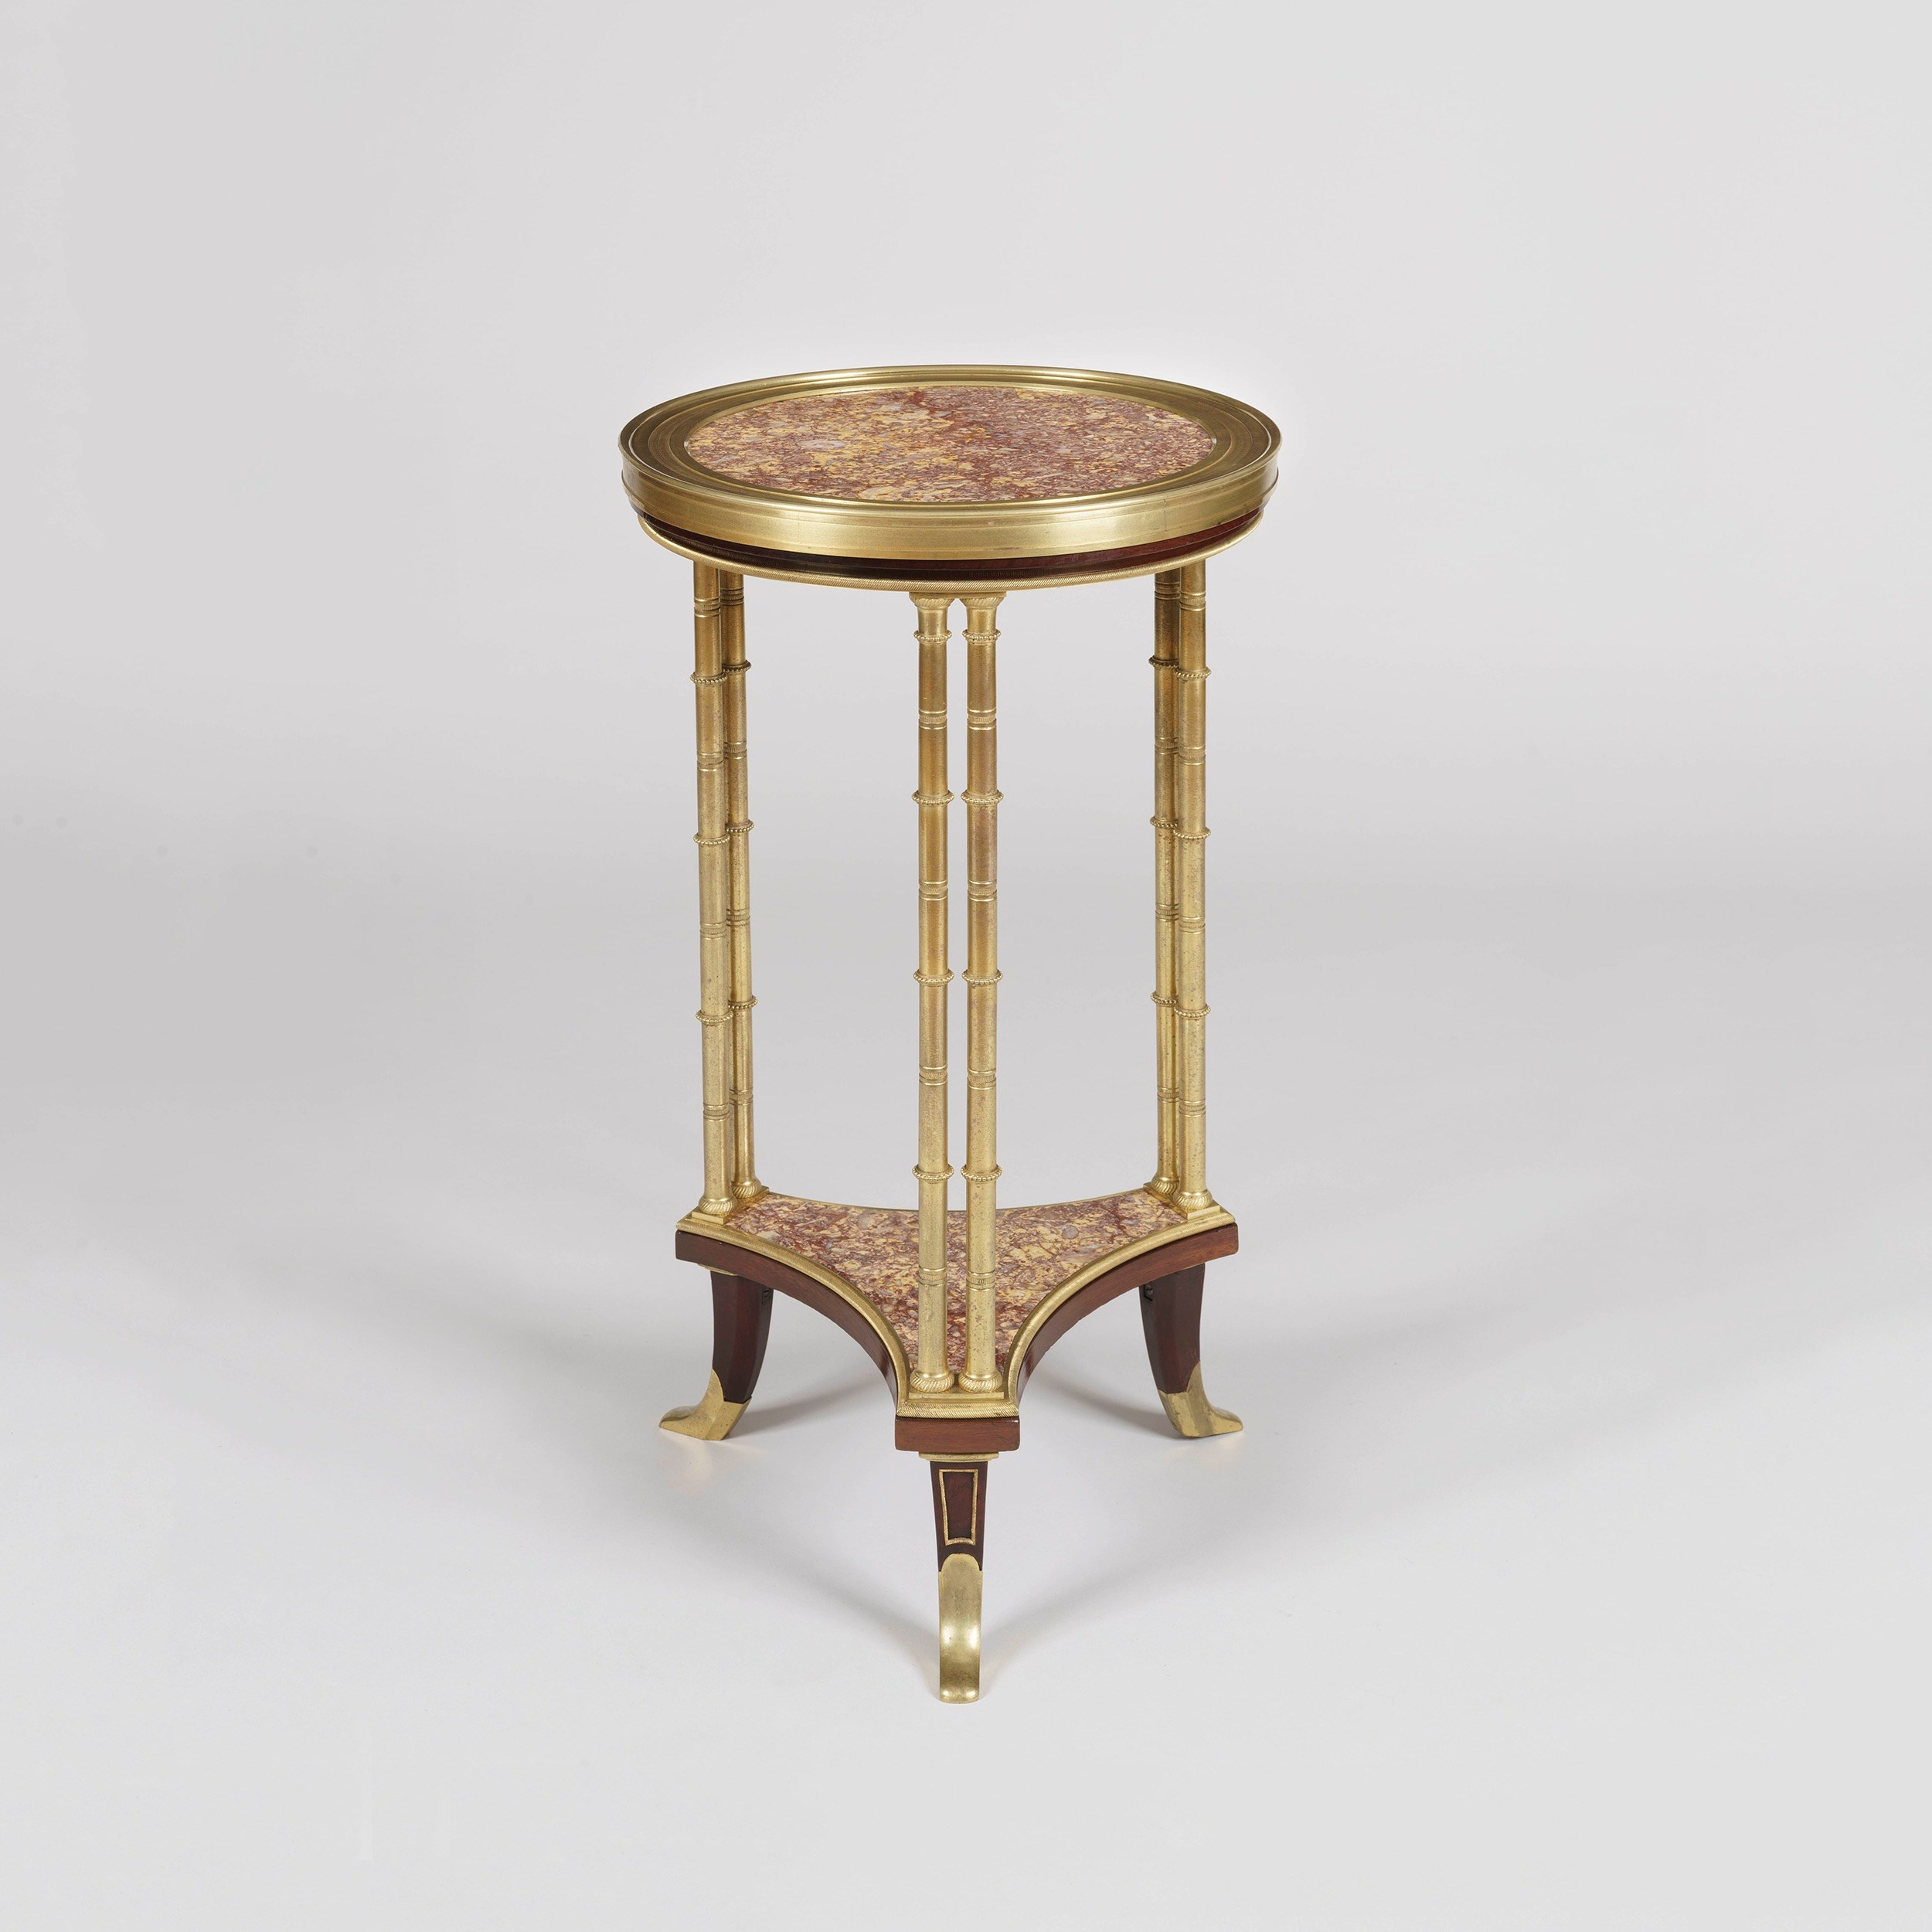 "A Fine Guéridon in the Manner of Adam Weisweiler by Henry Dasson Constructed in Brocatelle d'Espagne marble and mahogany, with finely cast and chased gilt bronze mounts; the top tier of circular form supported on cluster legs of bamboo shape in the typical manner of Weisweiler. The columns joined by a concave-shaped lower tier supported by flared feet dressed with gilt bronze sabots. This celebrated model of gueridon exemplifies the height of taste at the end of the eighteenth century, it was given by Madame du Barry (1743-1793) to the duc de Brissac, delivered by Lignereux and Daguerre. Daguerre's inventory describes a table of corresponding description ""Une petite table ronde forme de guéridon en racine de bois d'acajou poli sur trois pieds doubles en bronze doré façon de bambous avec entrejambe à tablettes et camé de porcelaine ornant la tablette supérieure prisée trois cent francs."" (Segoura, Maurice, and Patricia Lemonnier. Weisweiler. Paris: Monelle Hayot, 1983.) Henry Dasson became renowned in the nineteenth century for his furniture based on historical designs, often incorporating stylistic elements created by Weisweiler (see Payne, Christopher. Paris Furniture: The Luxury Market of the 19th Century. [S.L.]: Editions D'art Monelle, 2018.). Christopher Payne maintains that ""His [Dasson's] best work must be the combinations of elements from Riesener and Weisweiler in a modernised Louis XVI manner"" (p. 315) as seen in the present gueridon. Signed and dated 'Henry Dasson. 1878.' French, 1878 Dimensions: H: 26 in / 65 cm  